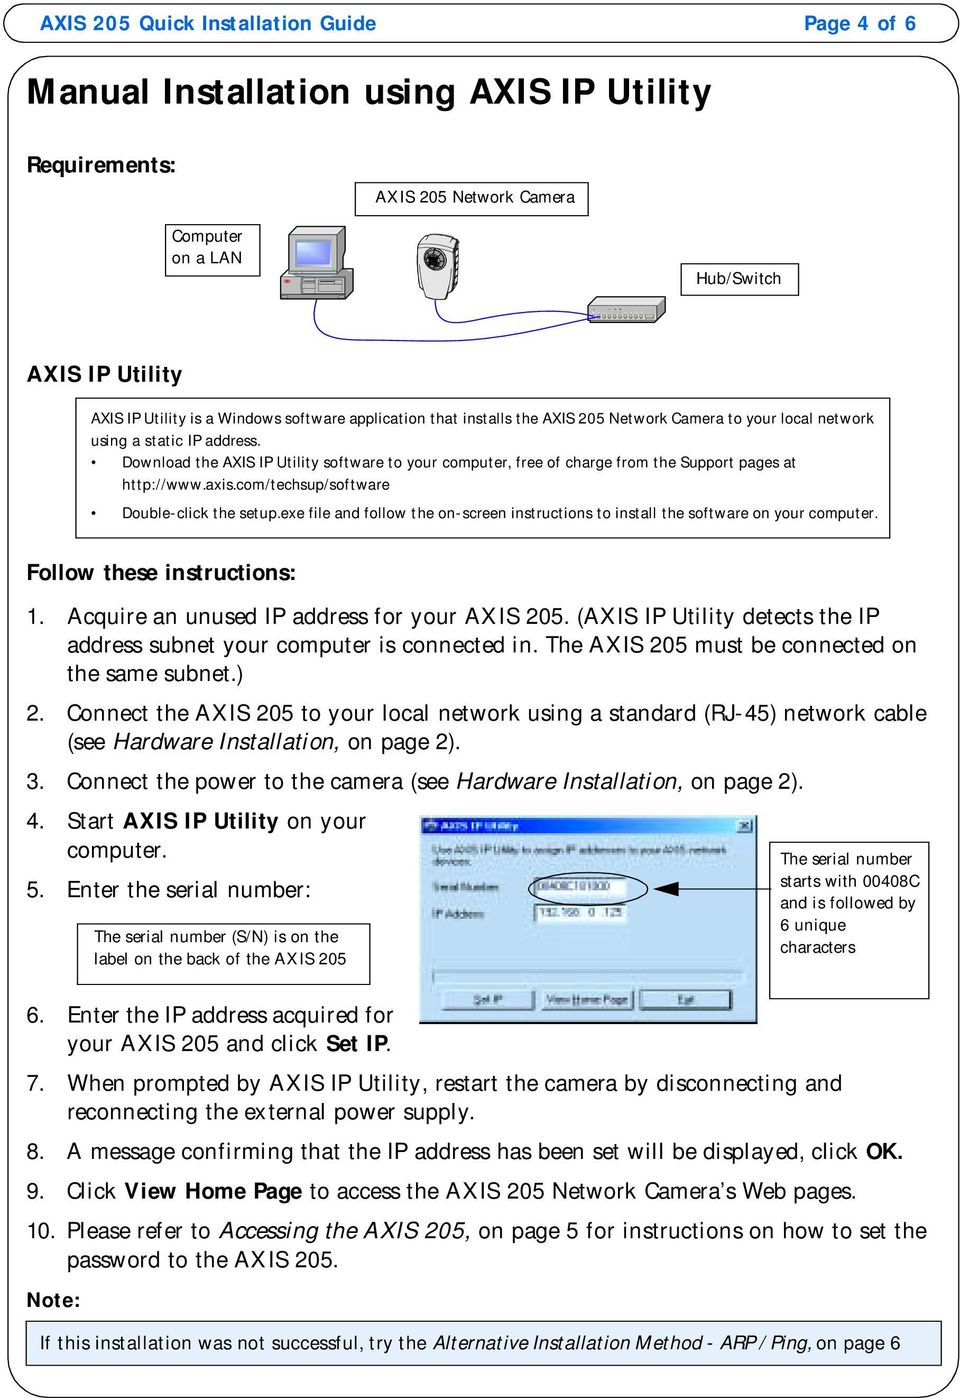 Download the AXIS IP Utility software to your computer, free of charge from the Support pages at http://www.axis.com/techsup/software Double-click the setup.